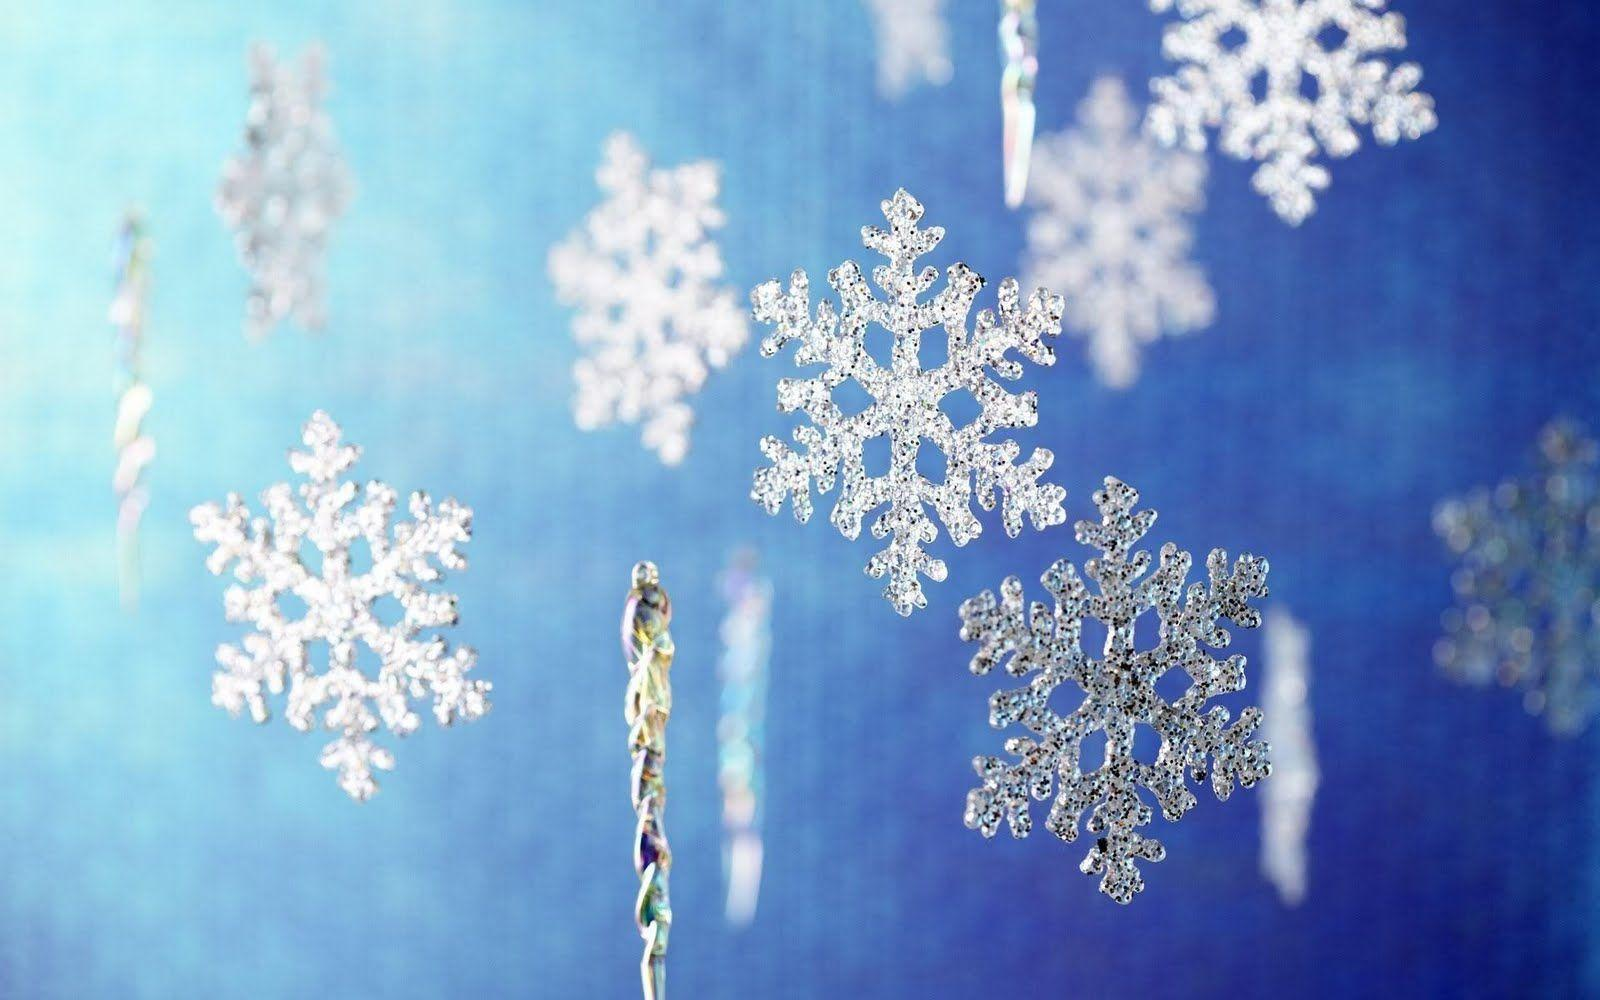 Christmas snowflakes clip art pictures and backgrounds wallpapers